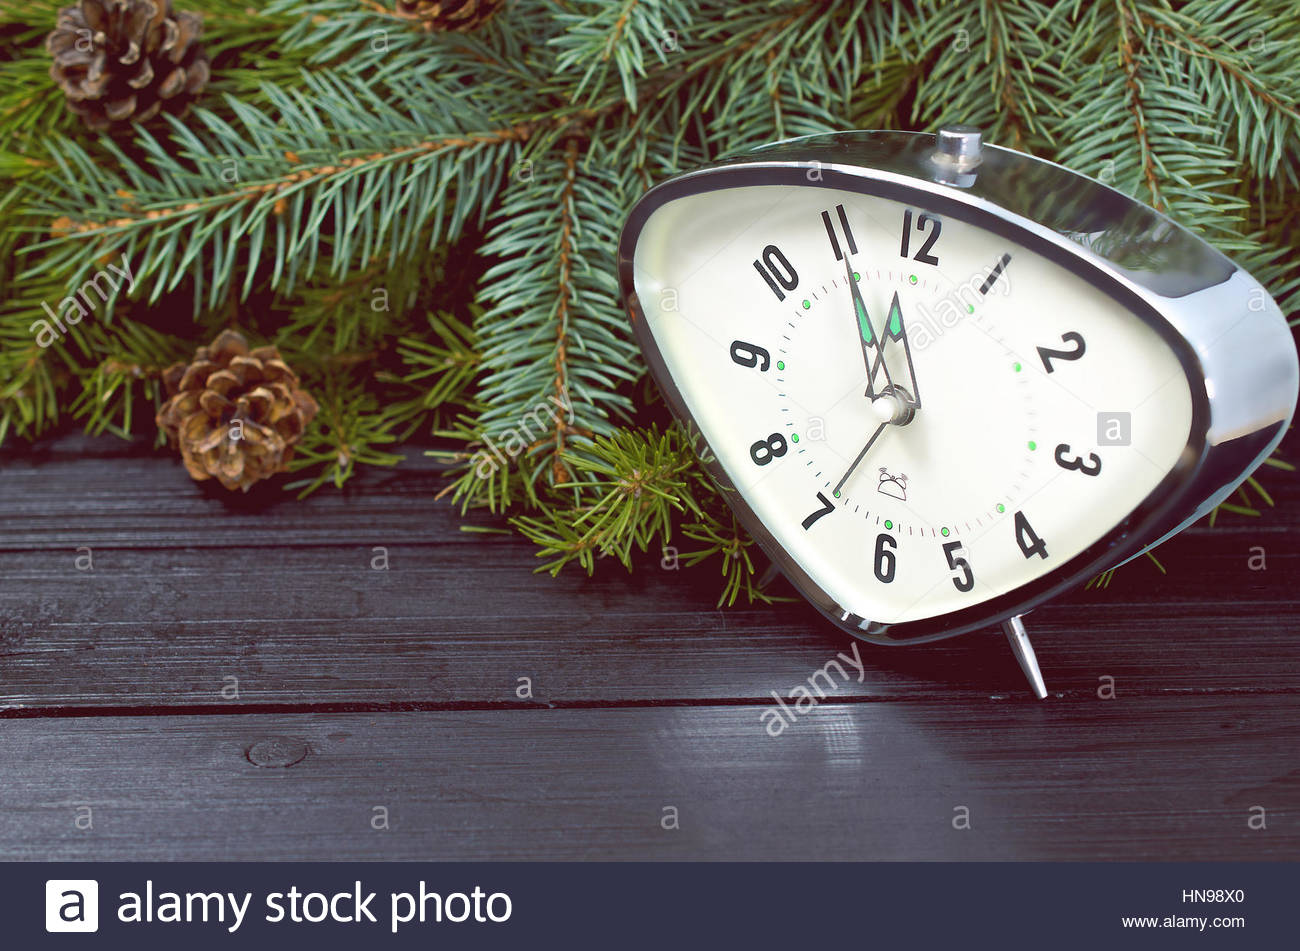 Watches And Pine Branches On A Dark Background In The New Year's Eve - Stock Image